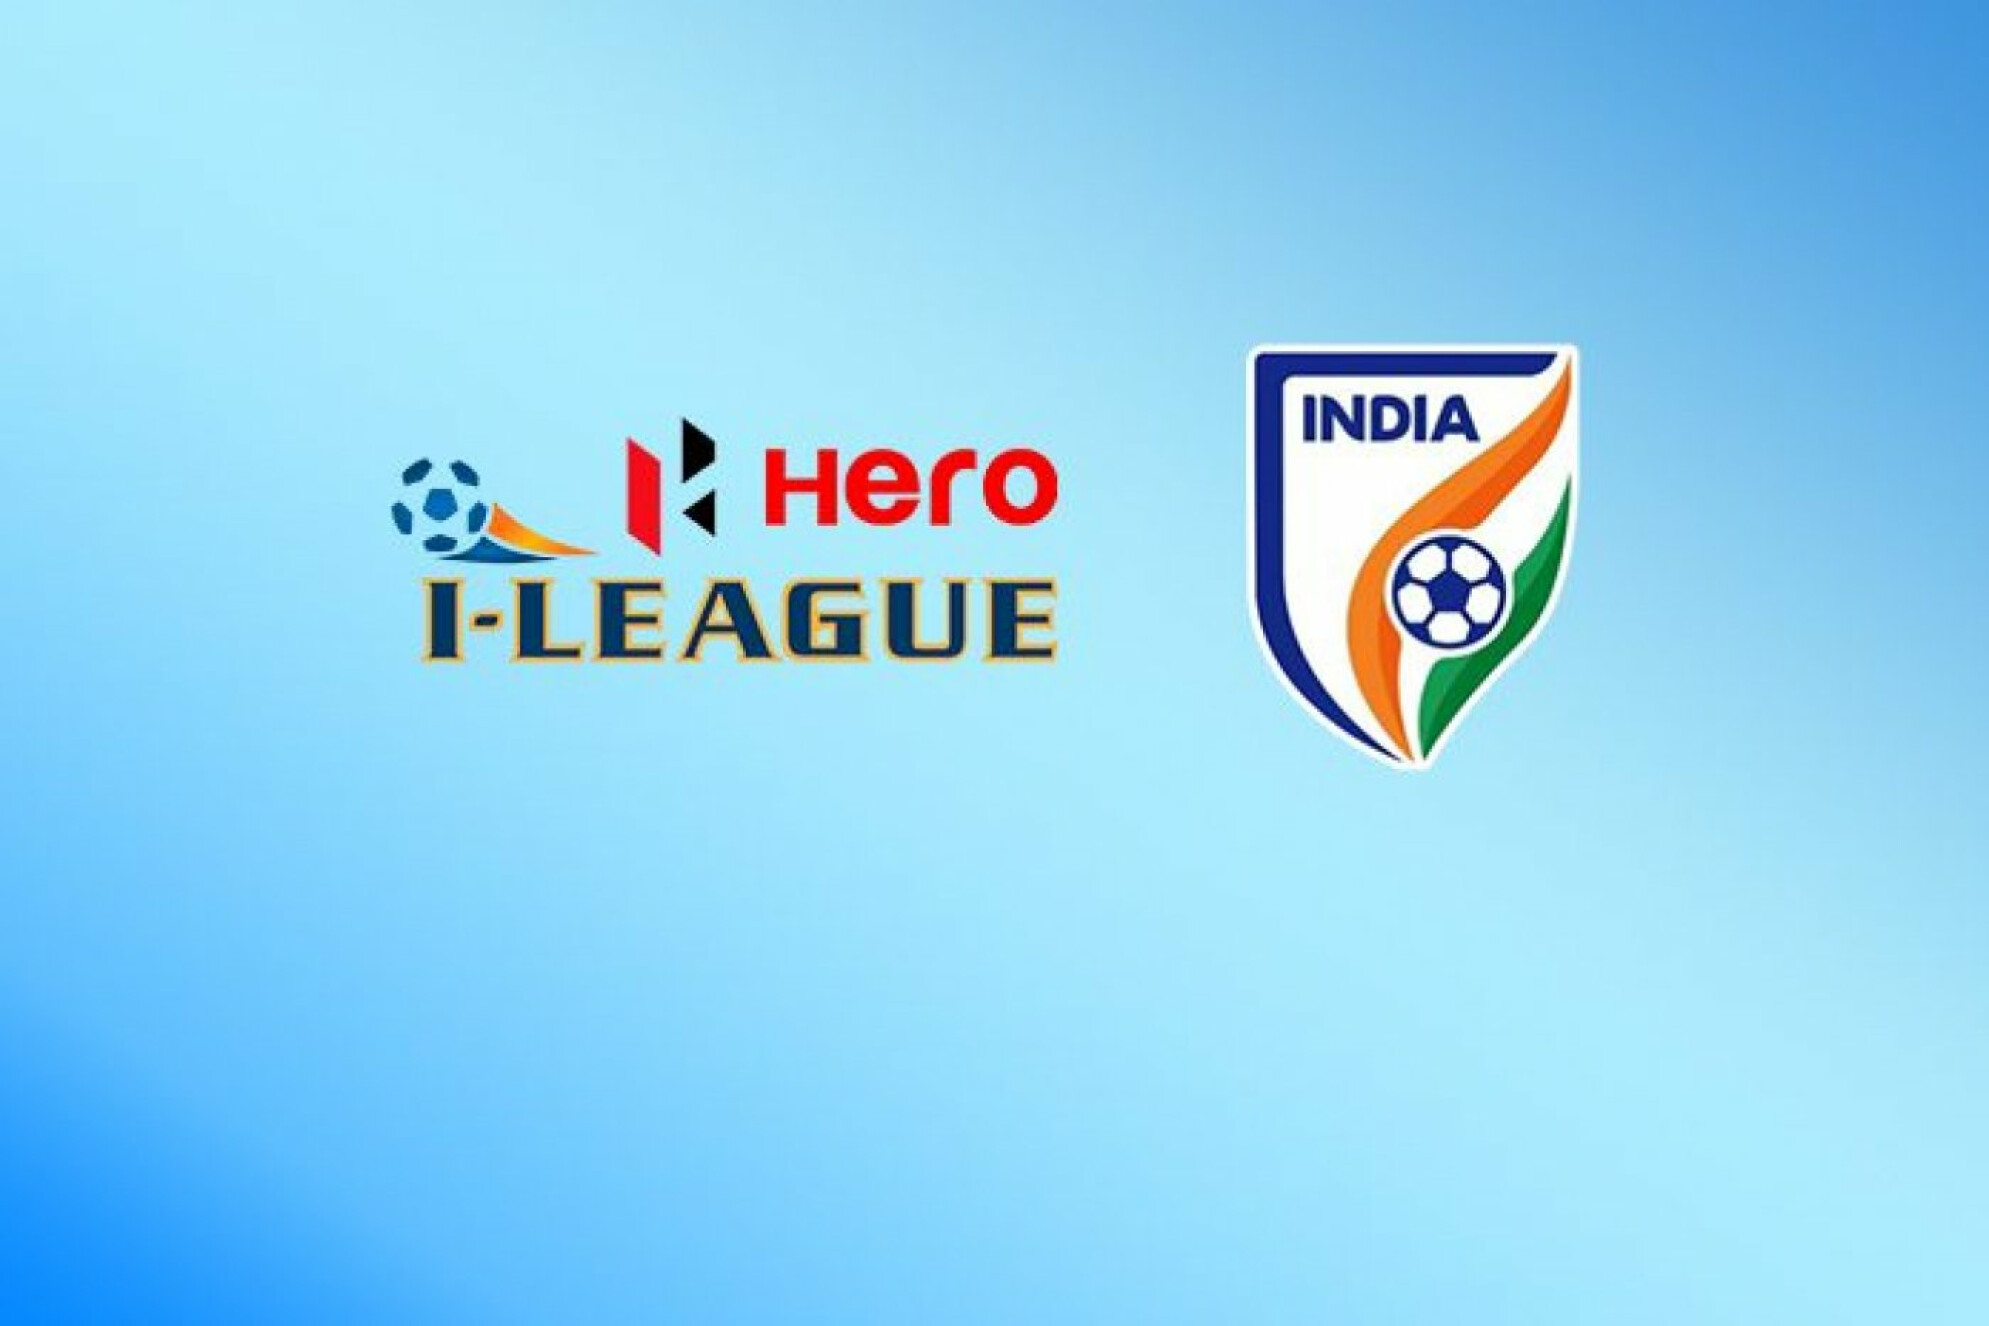 I-league clubs refuse to give Champions League spot, demand HD broadcast